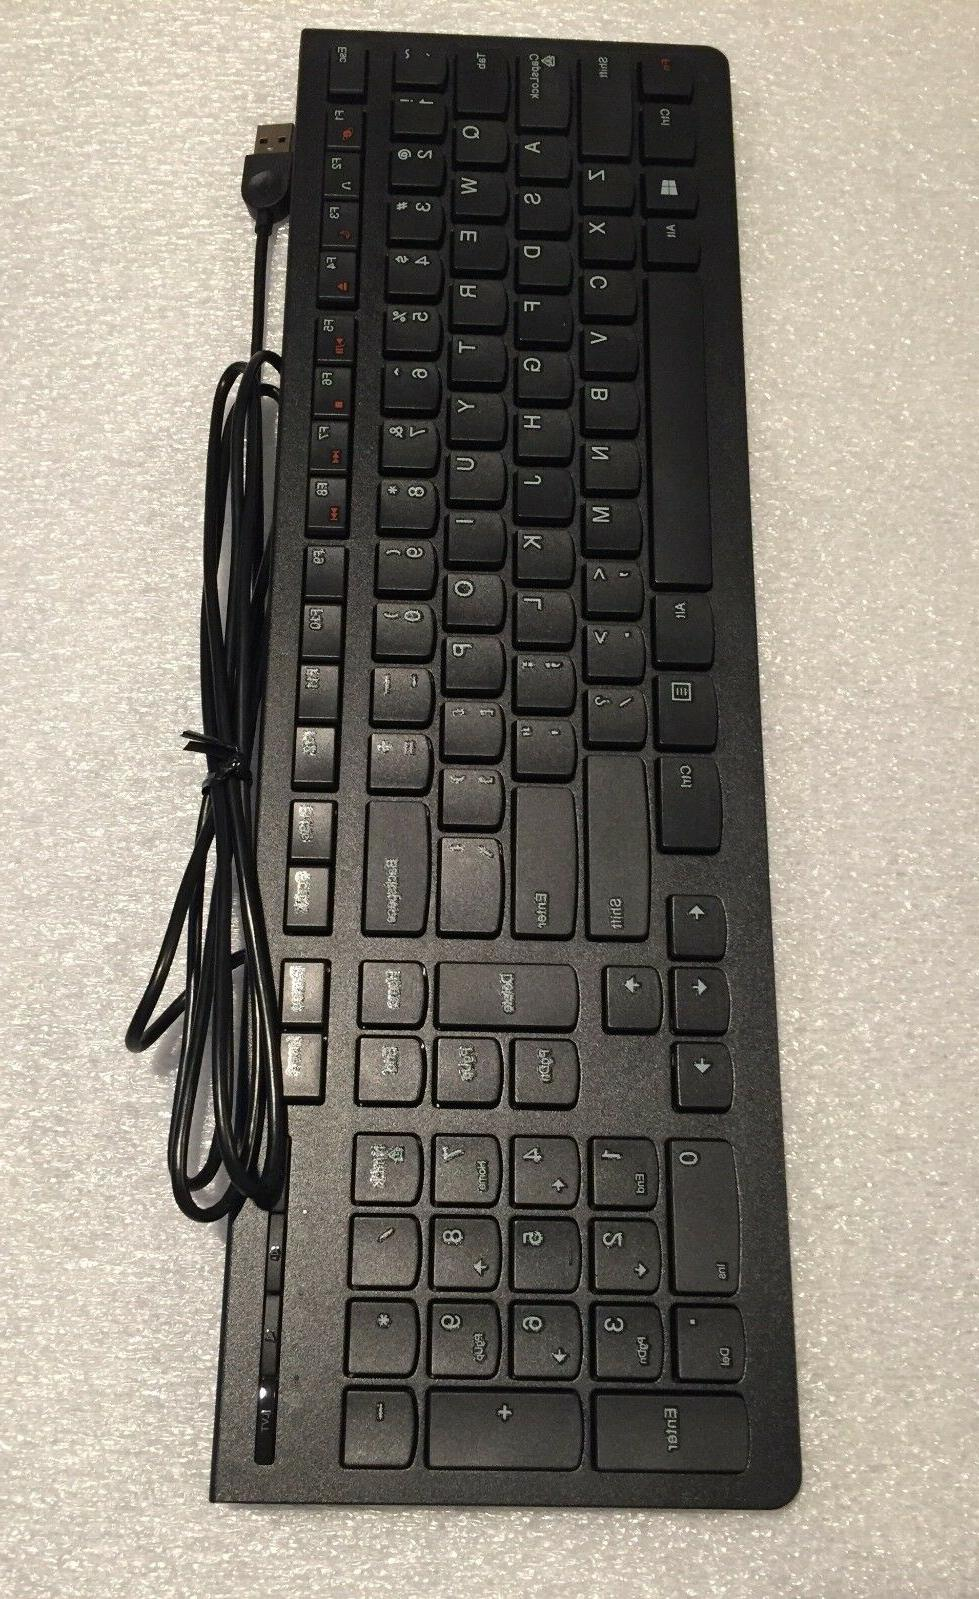 genuine kb4721 usb wired replacement pc computer